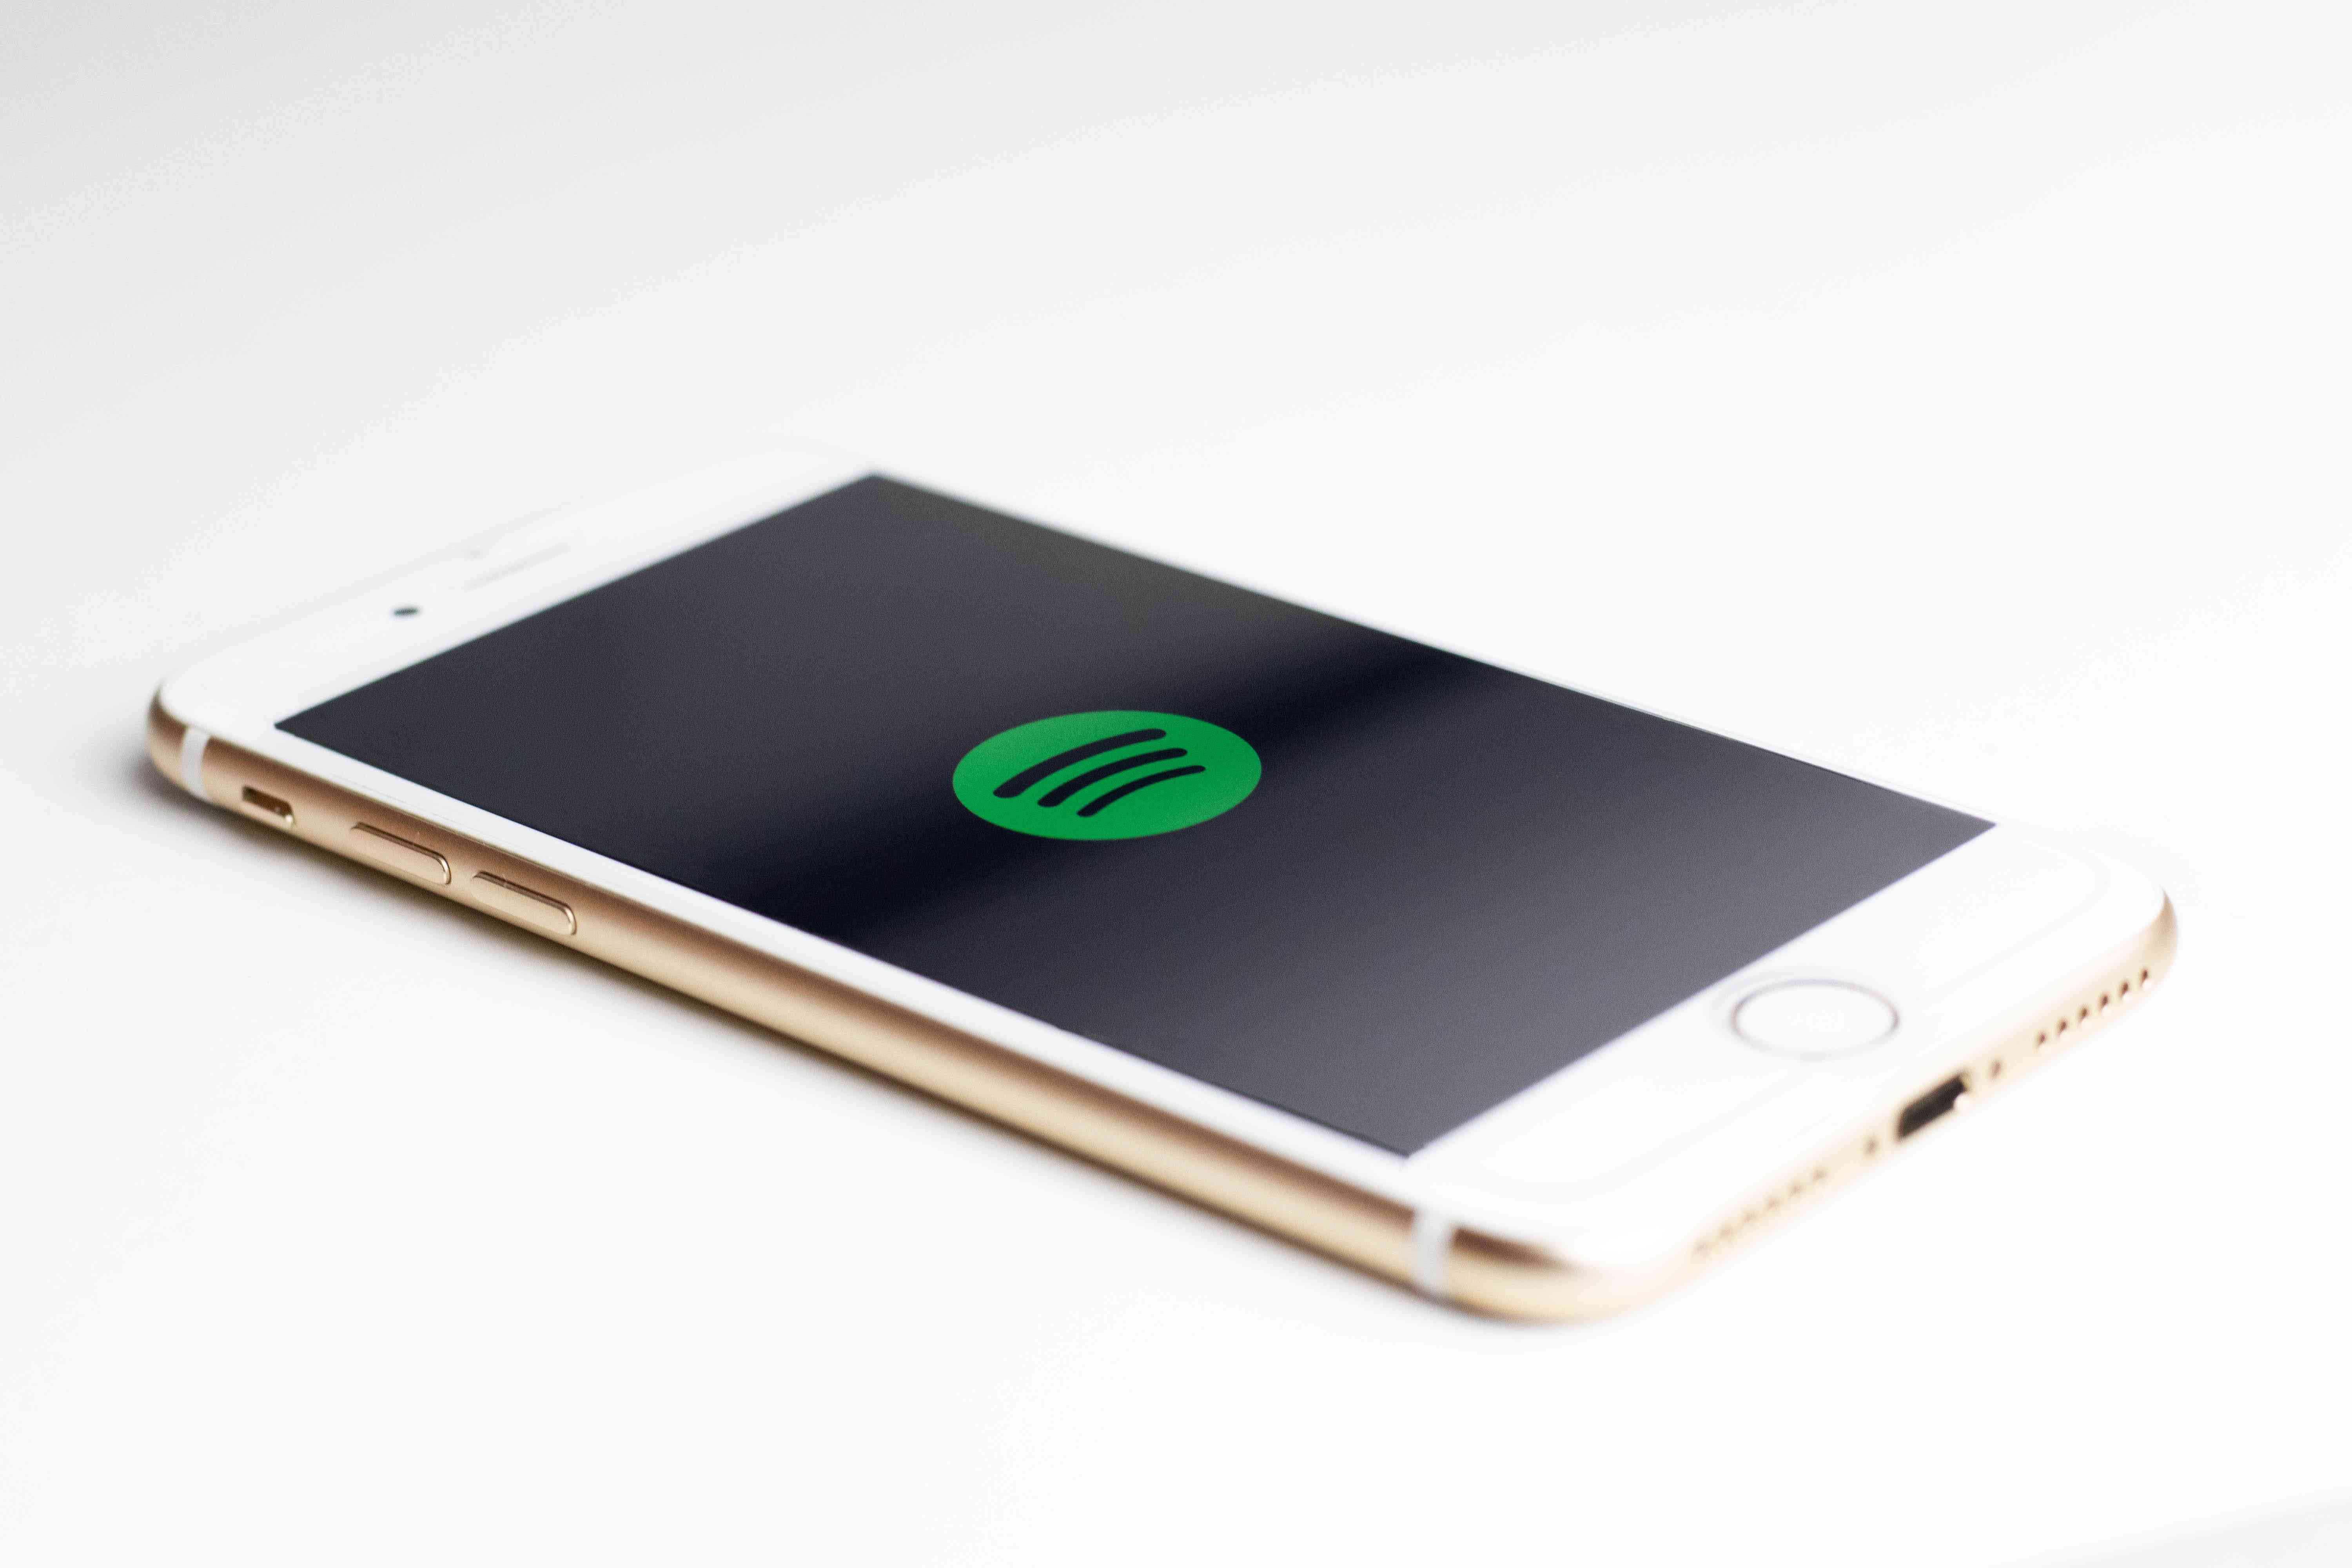 The Spotify logo displayed on an iPhone.